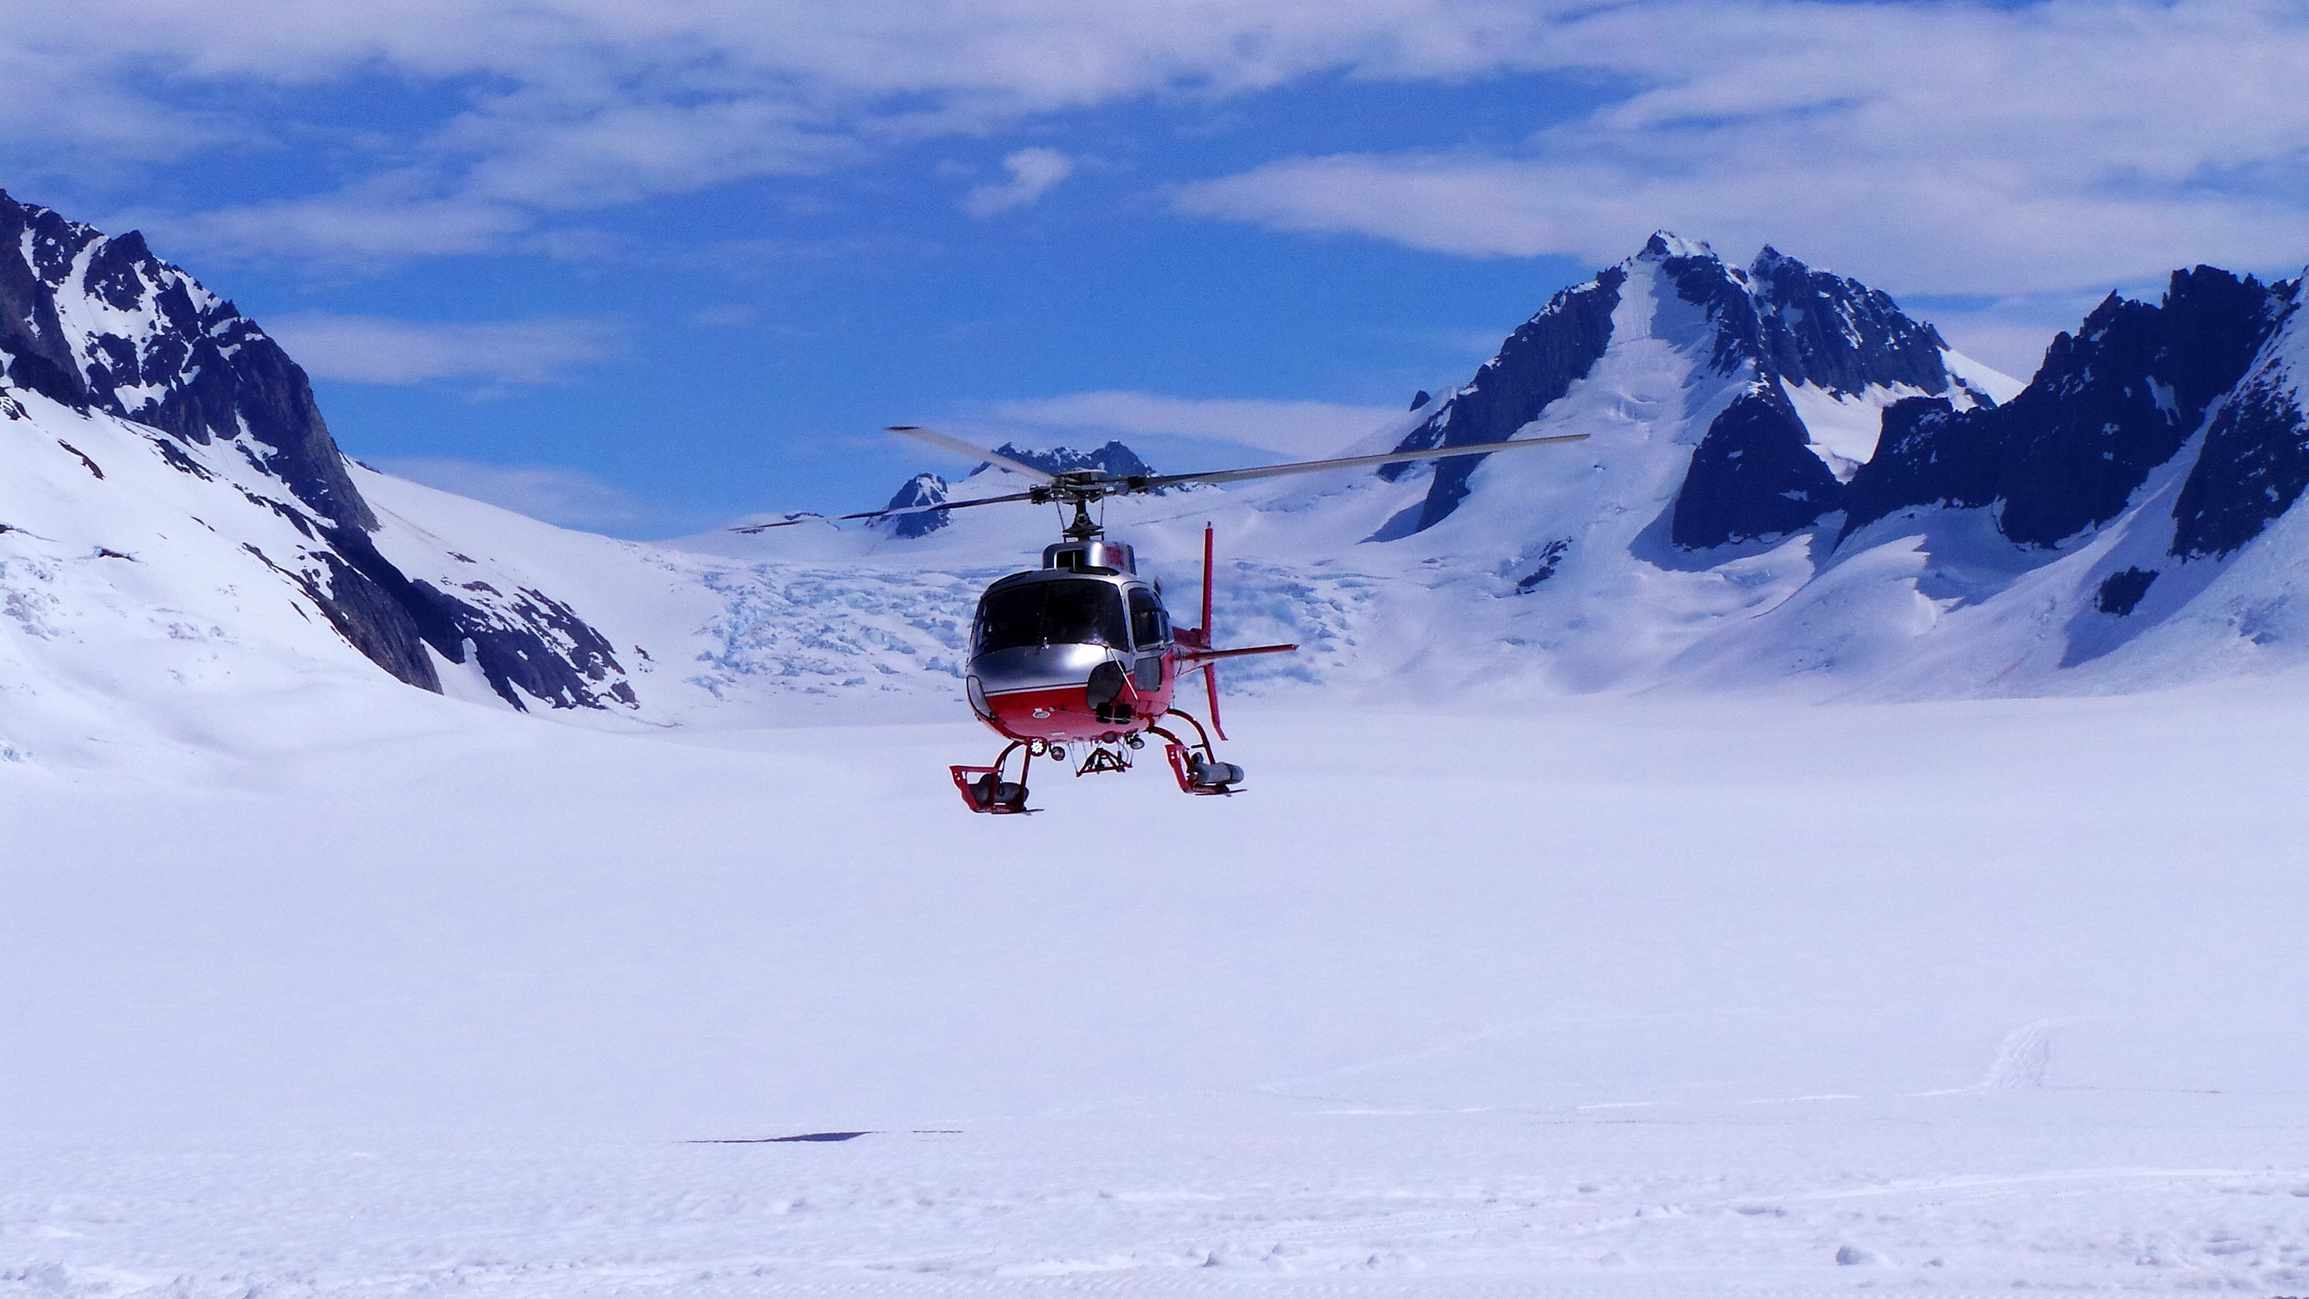 Helicopter On Snow Covered Landscape